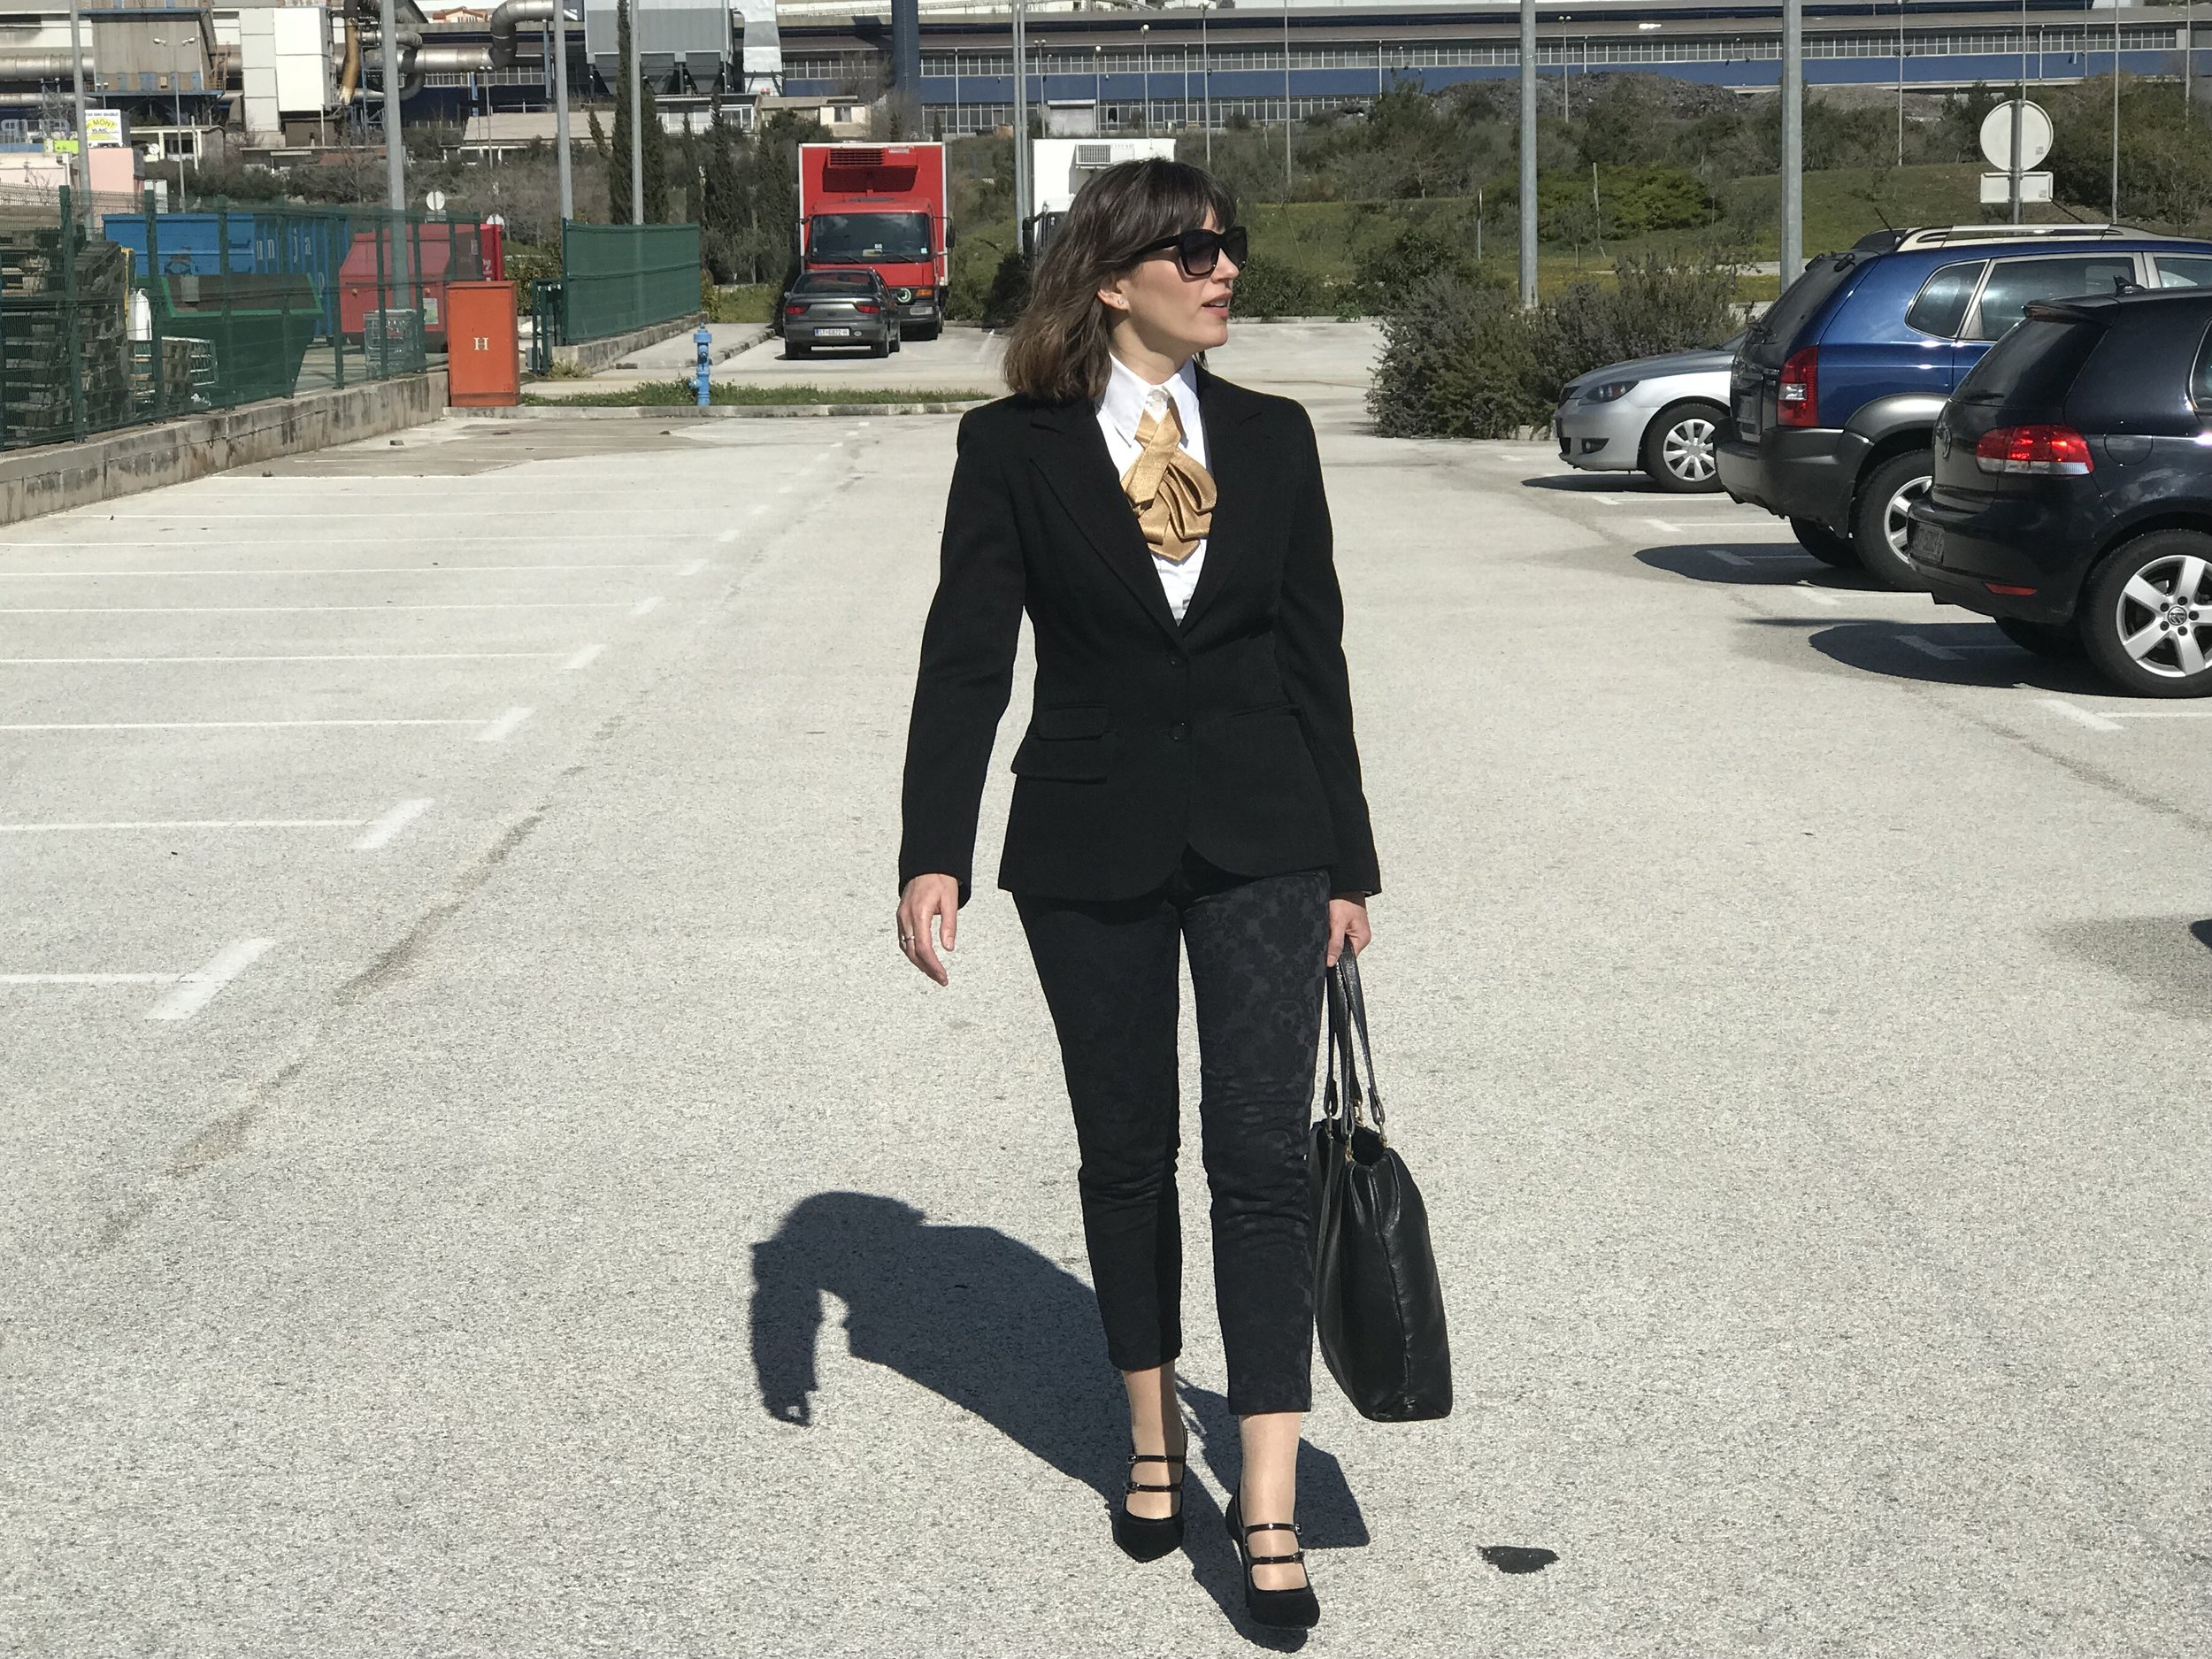 Business Formal Look Walking to a Meeting